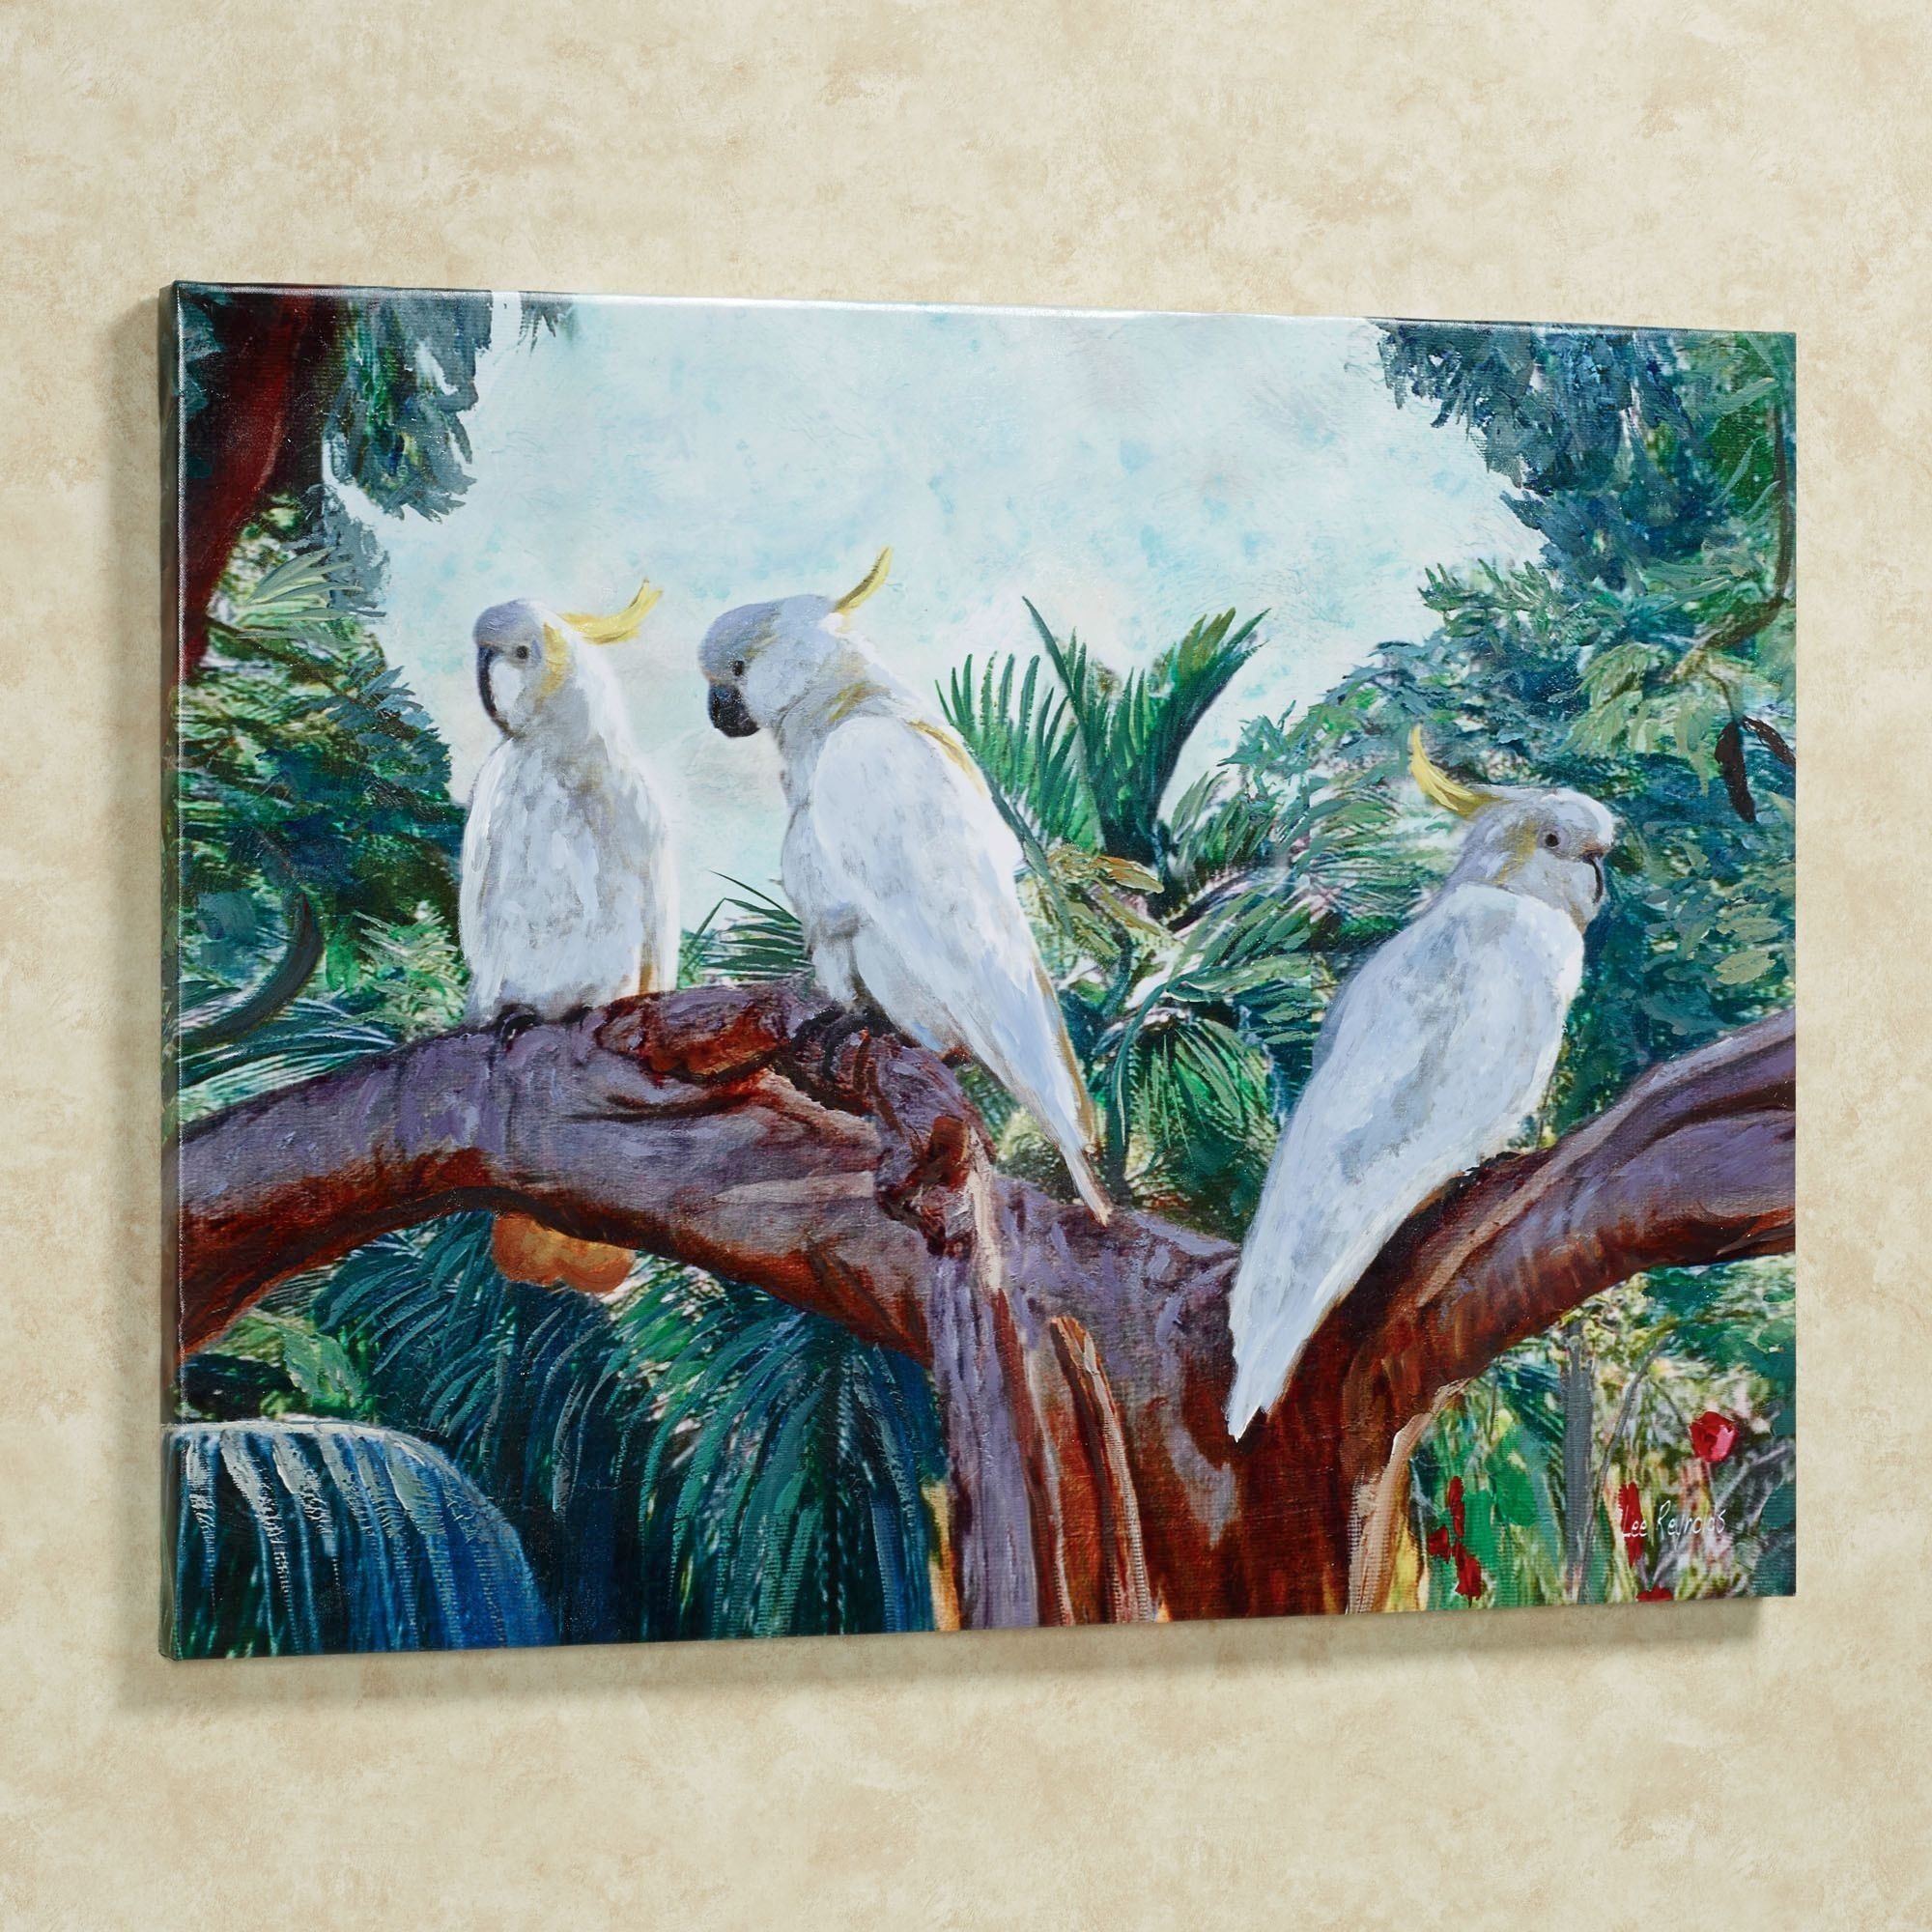 Cockatrio Cockatoo Birds Canvas Wall Art In Most Recent Birds Canvas Wall Art (View 14 of 15)